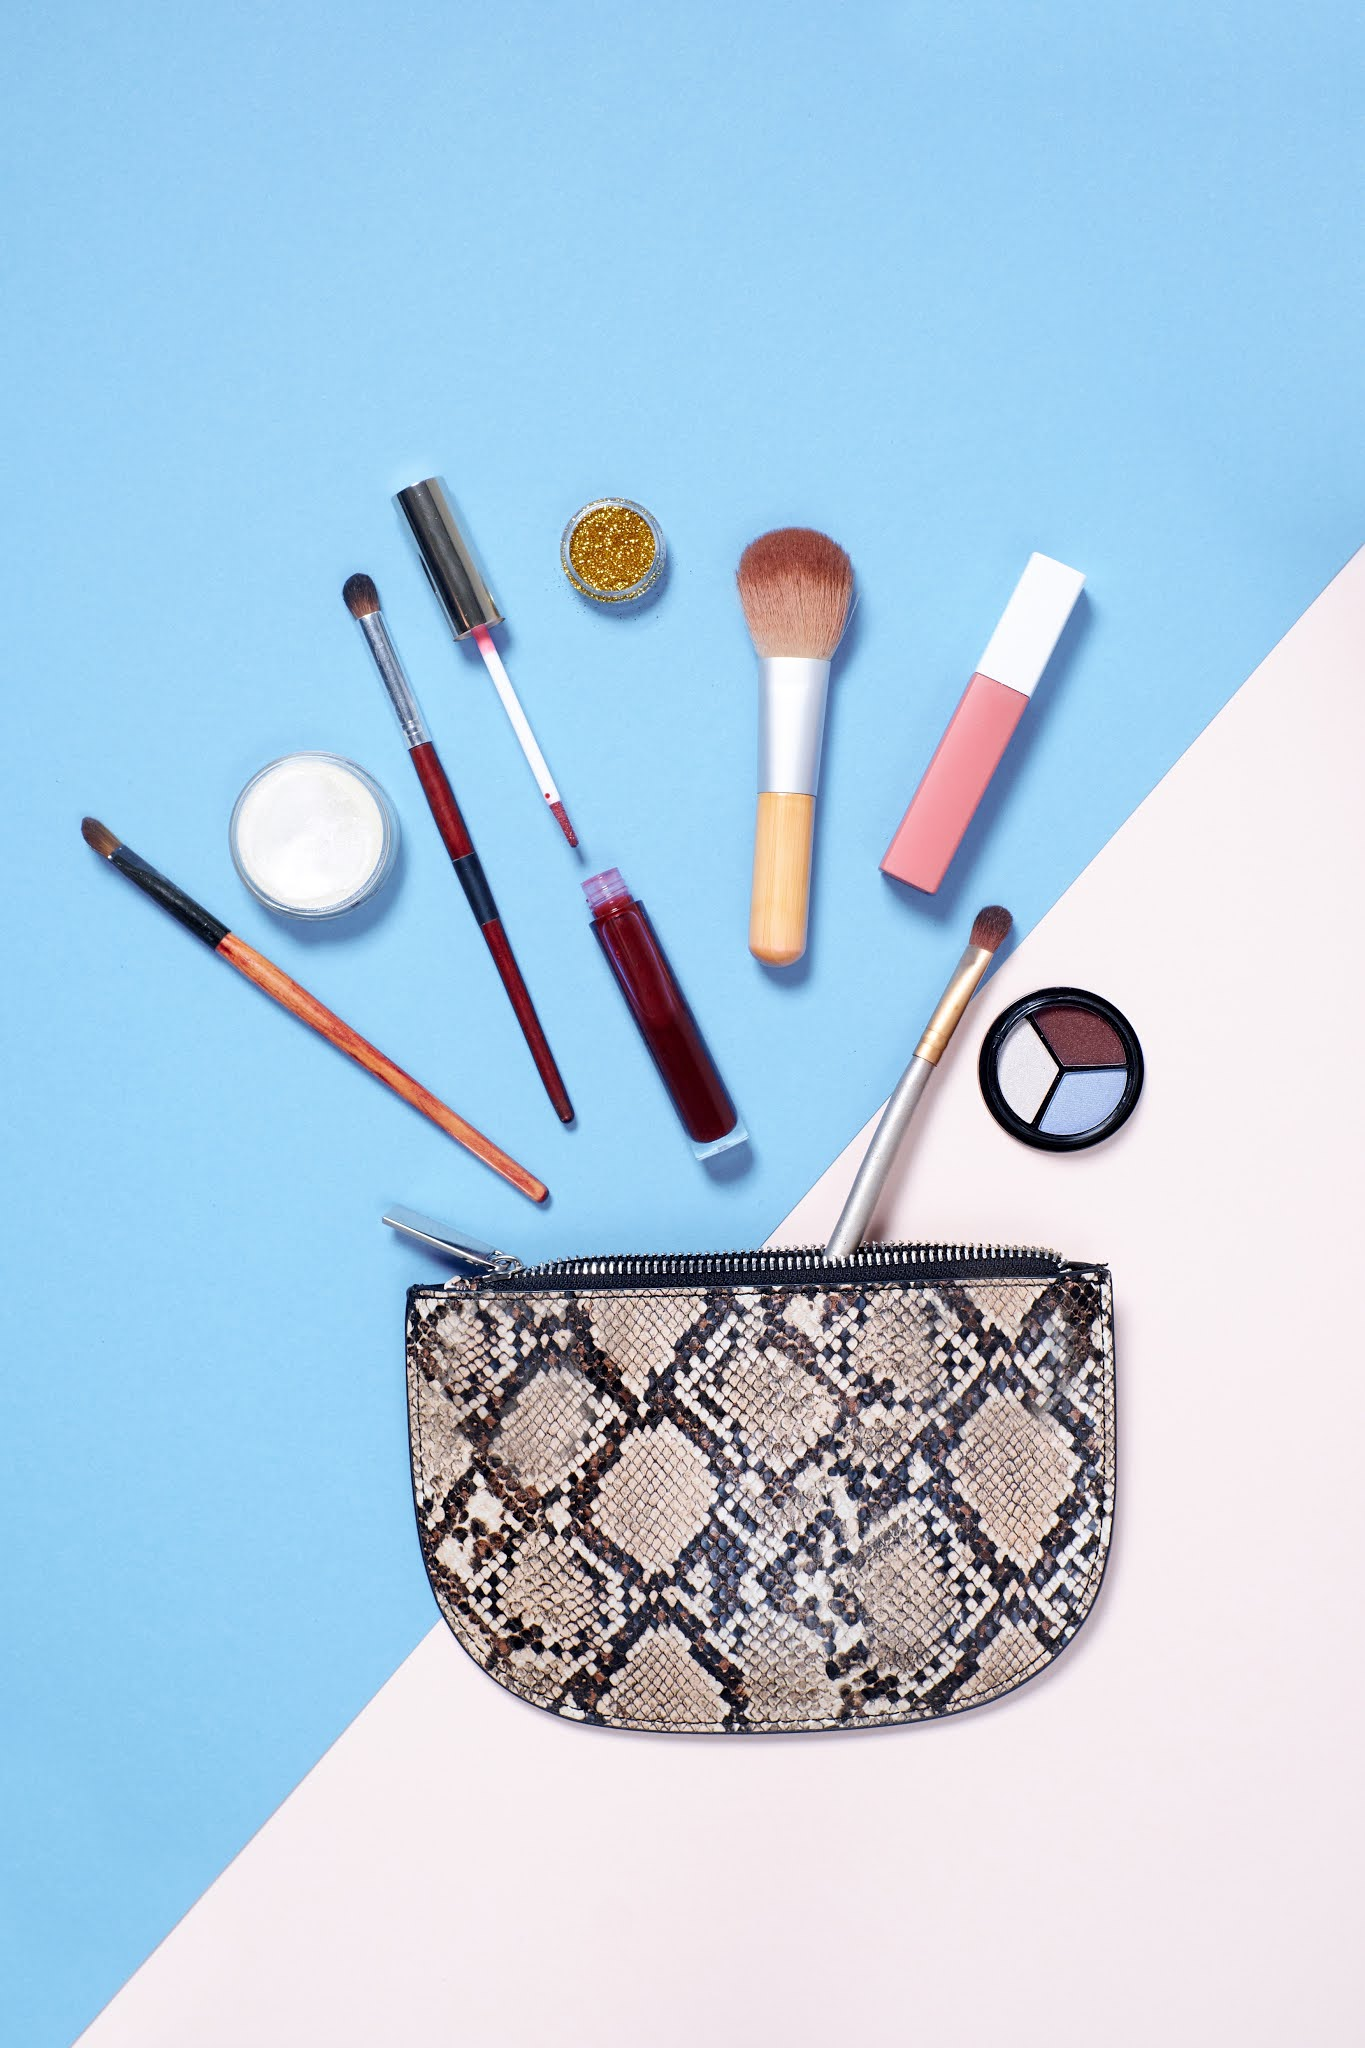 pouch with makeup items falling out of it on blue and white background